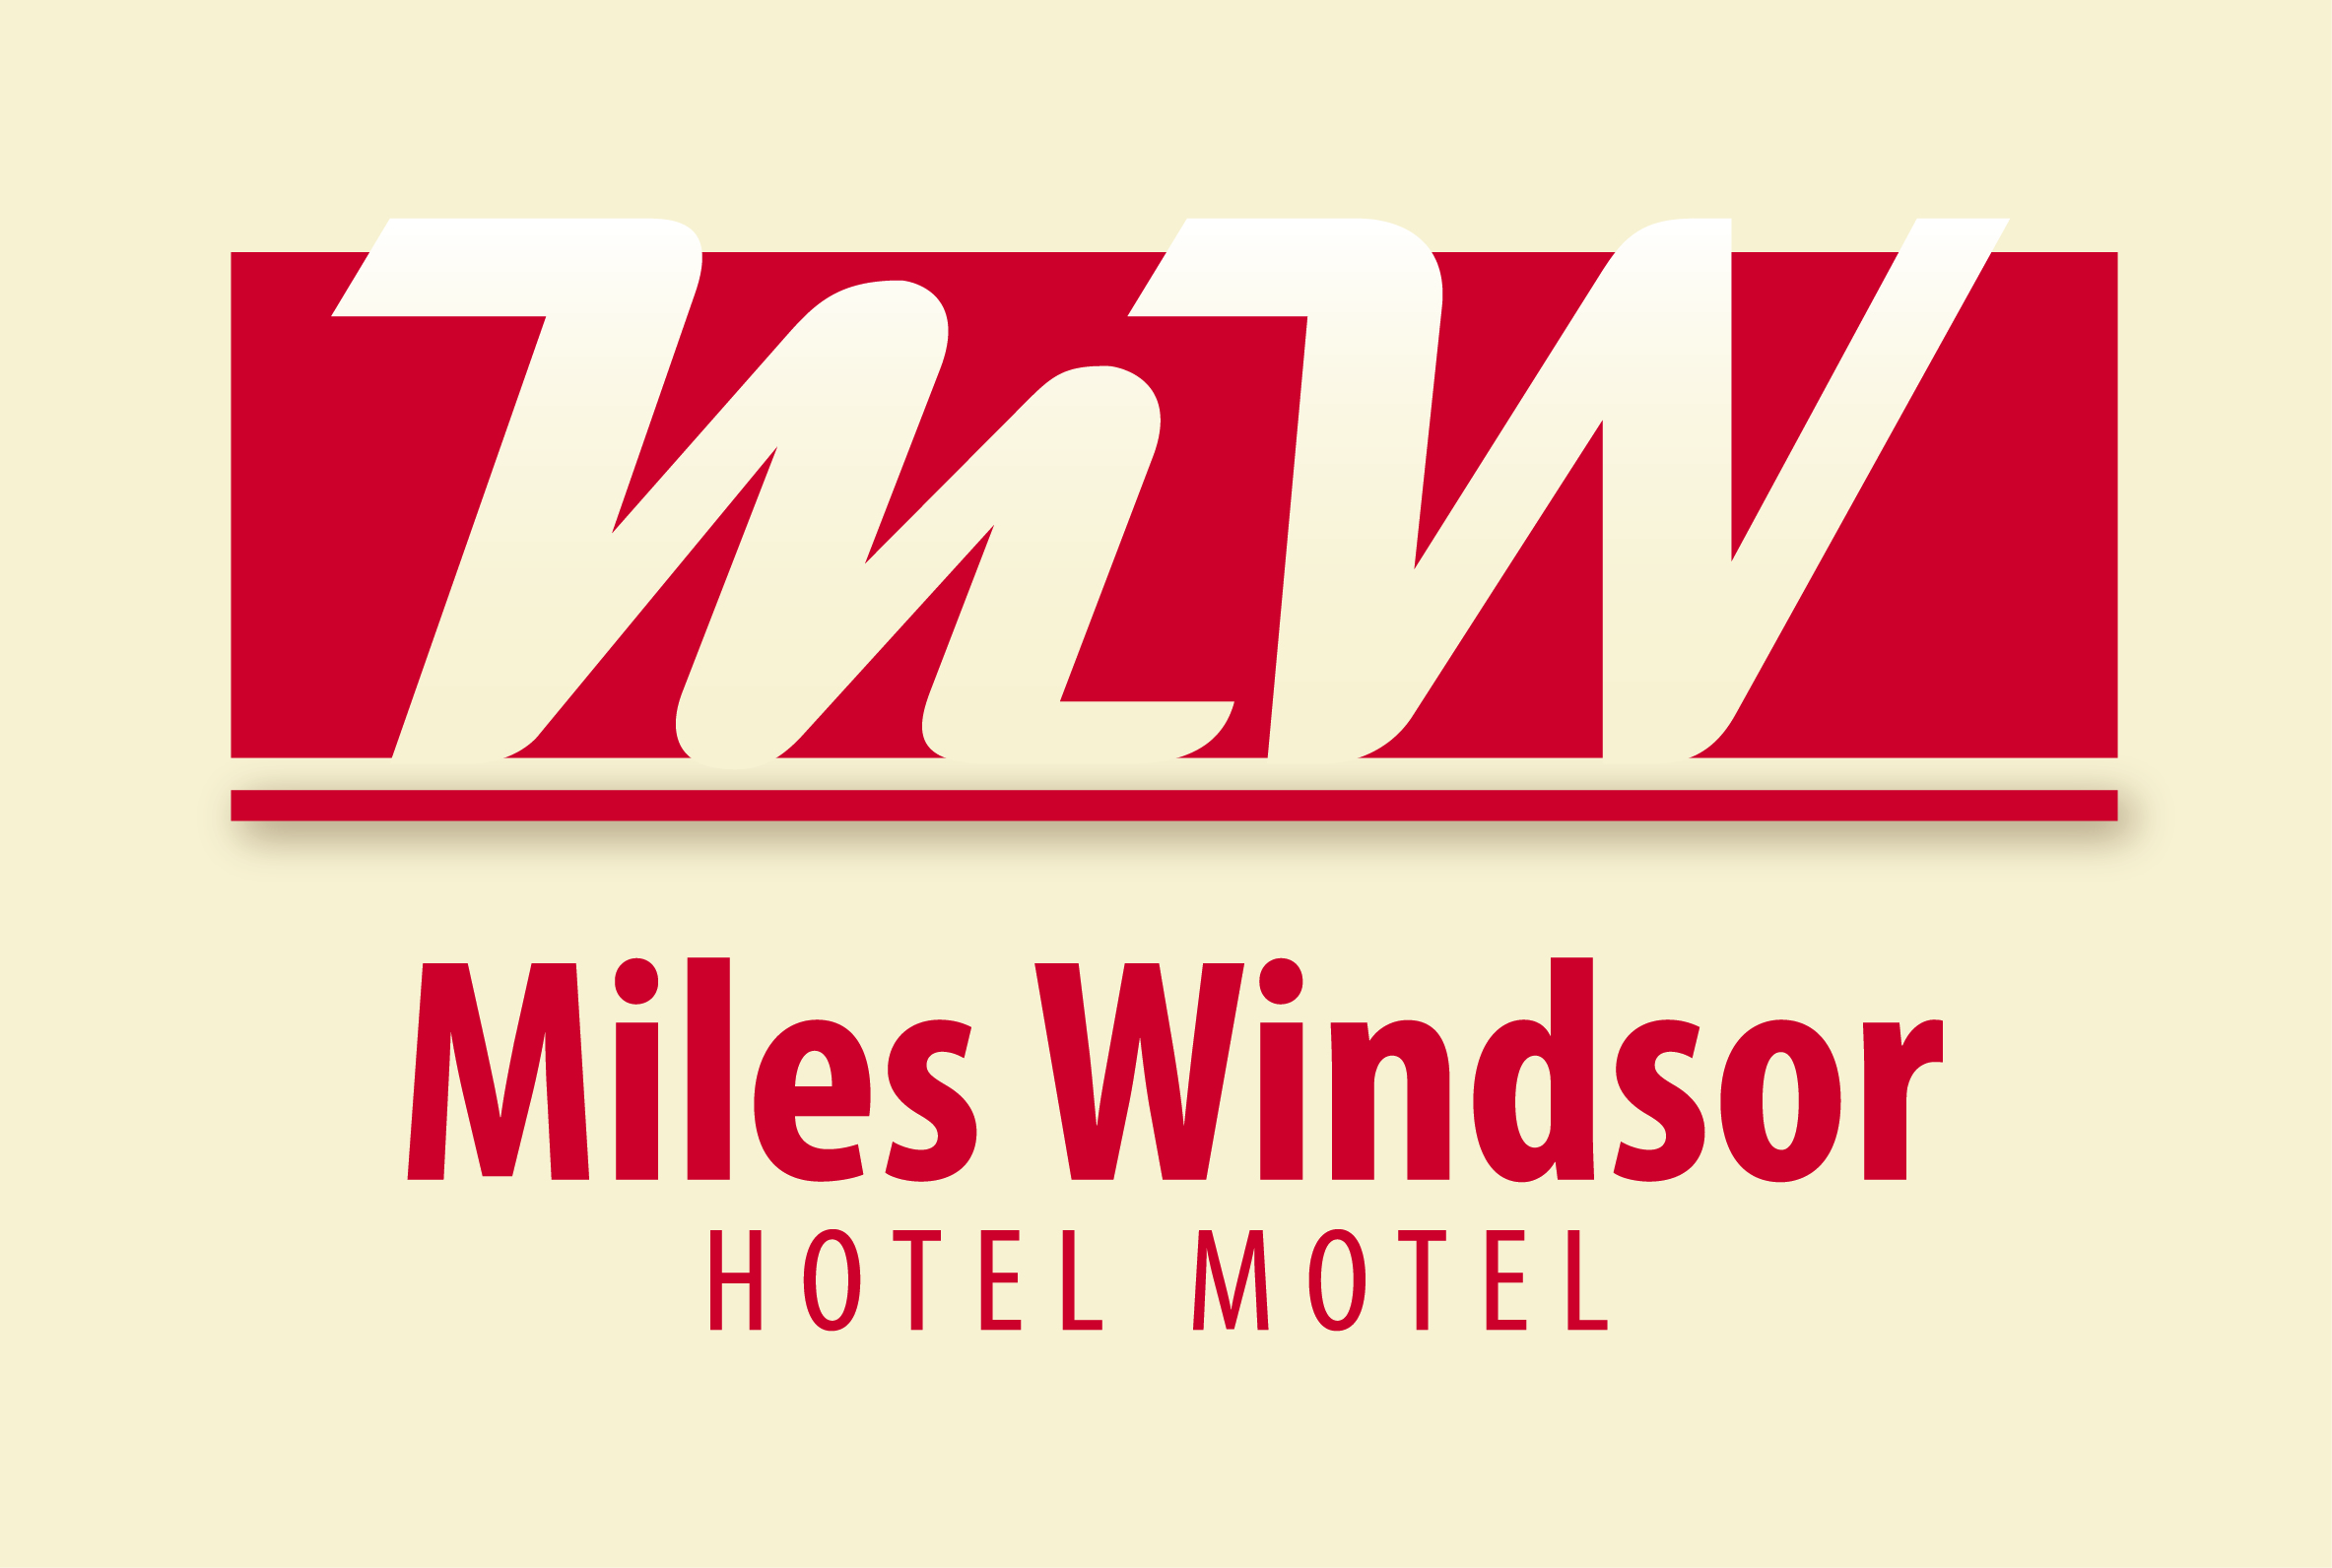 Miles Windsor Hotel Motel